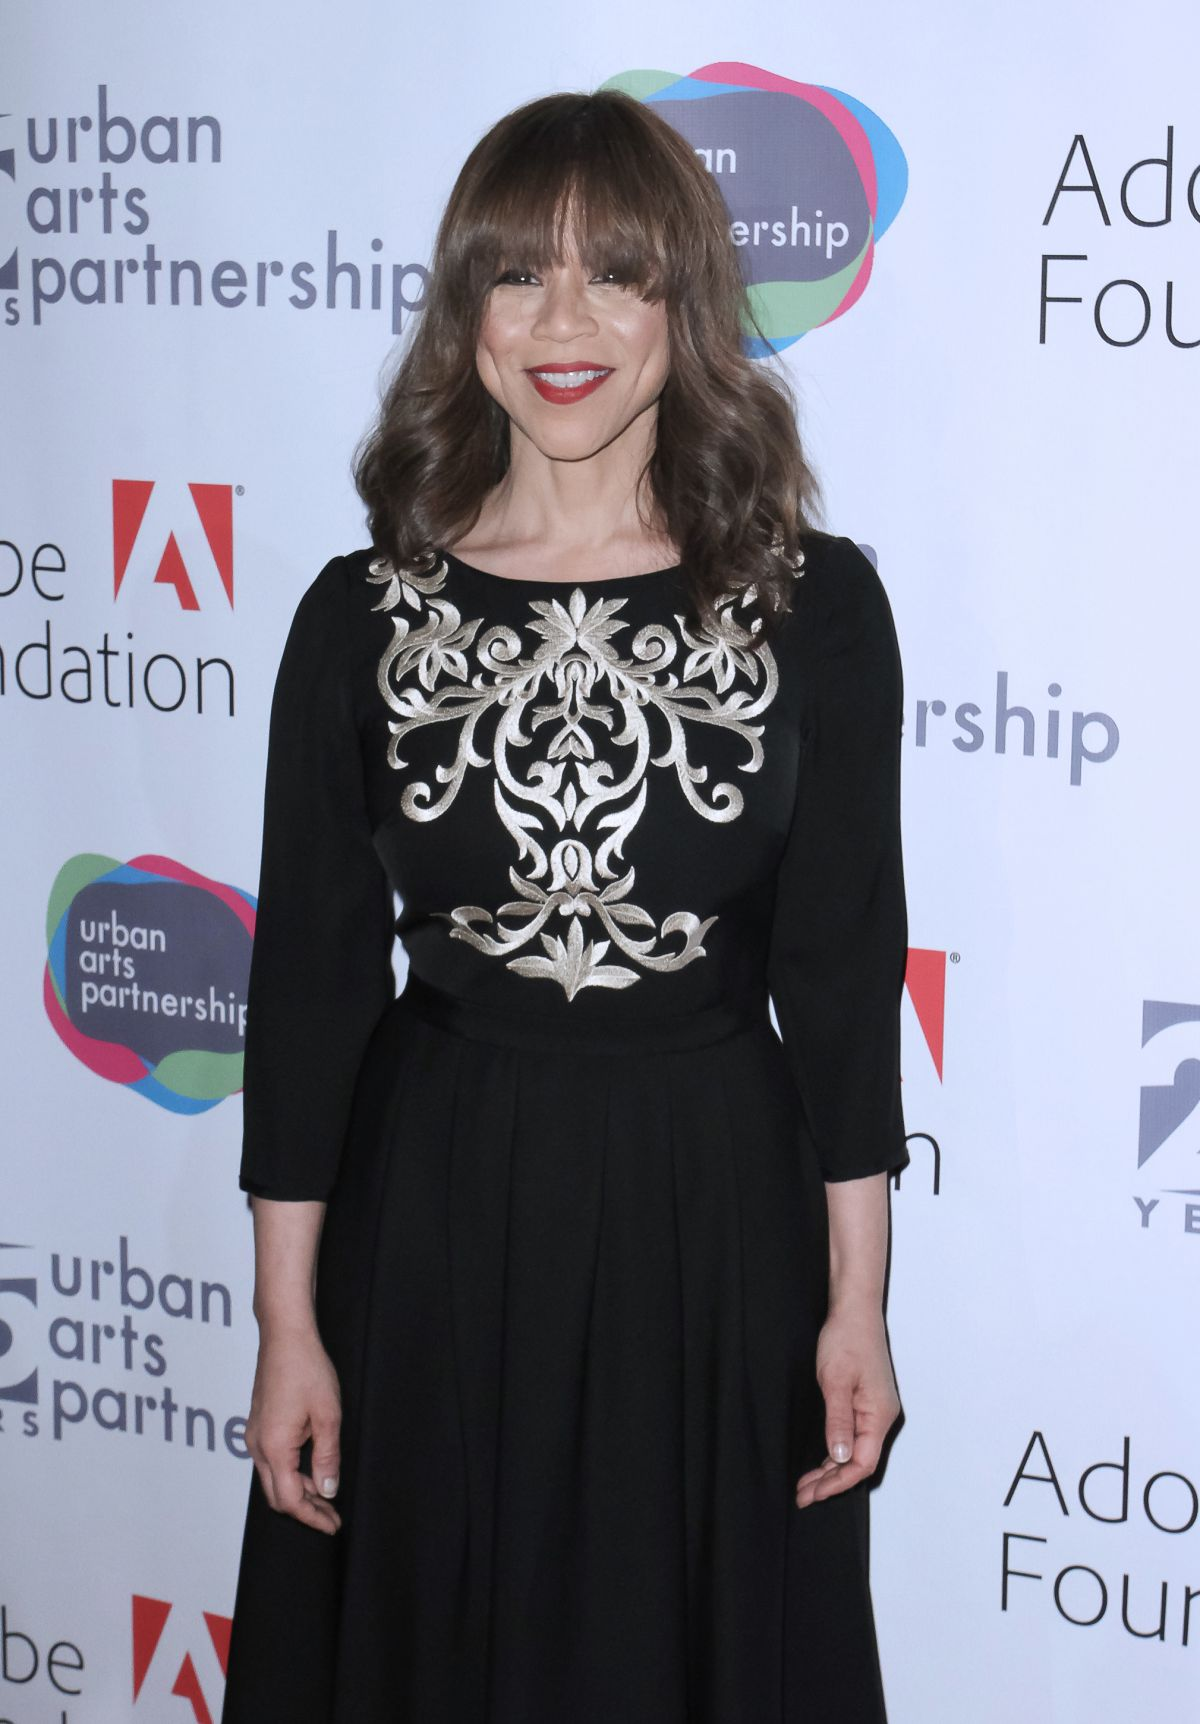 ROSIE PEREZ at Urban Arts Partnership 25th Anniversary Benefit in New York 03/15/2017